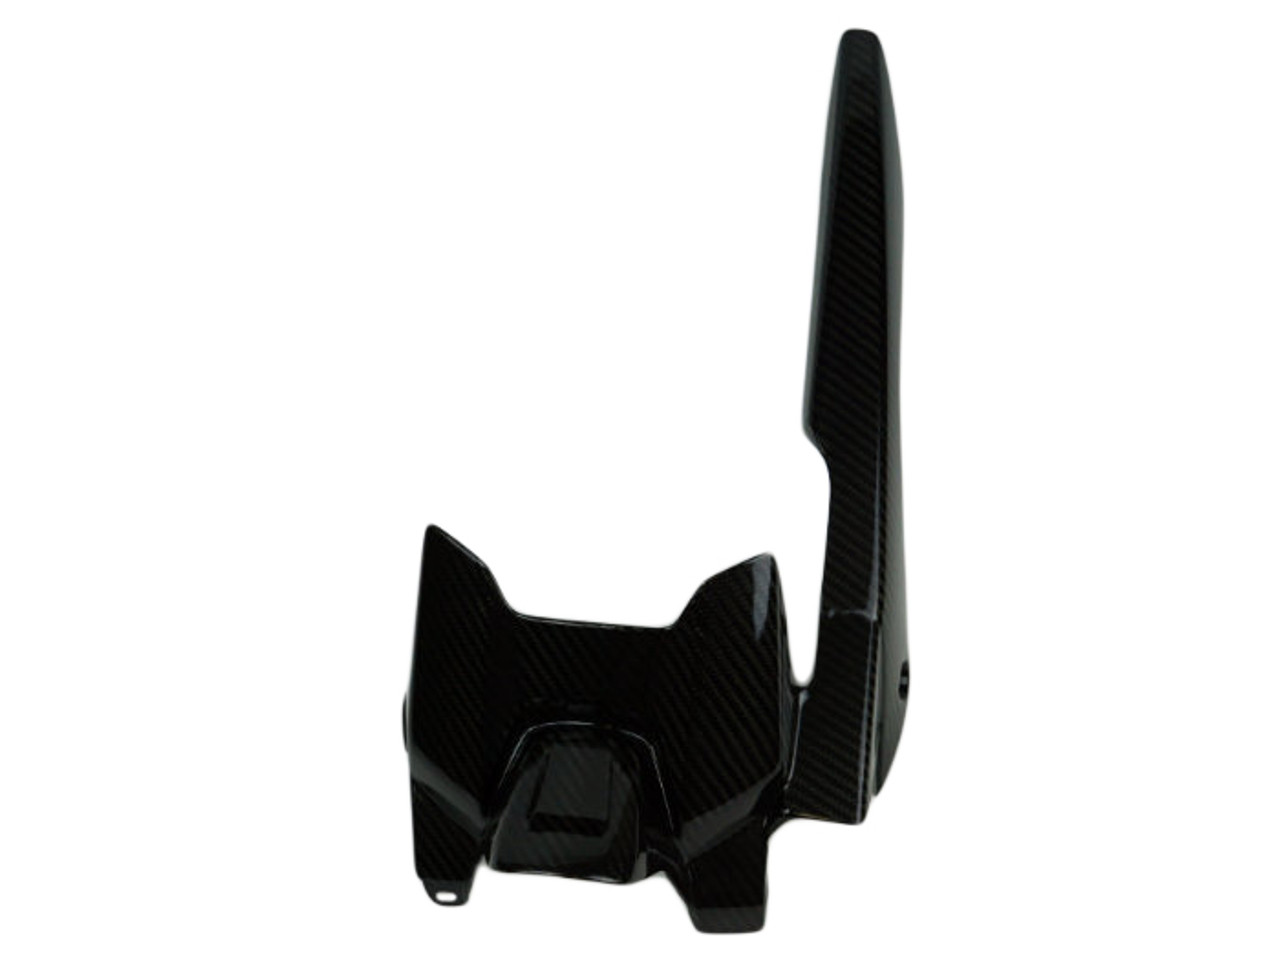 Rear Hugger with Chainguard in Glossy Twill Weave Carbon Fiber for Yamaha FZ-07/ MT-07 2015+